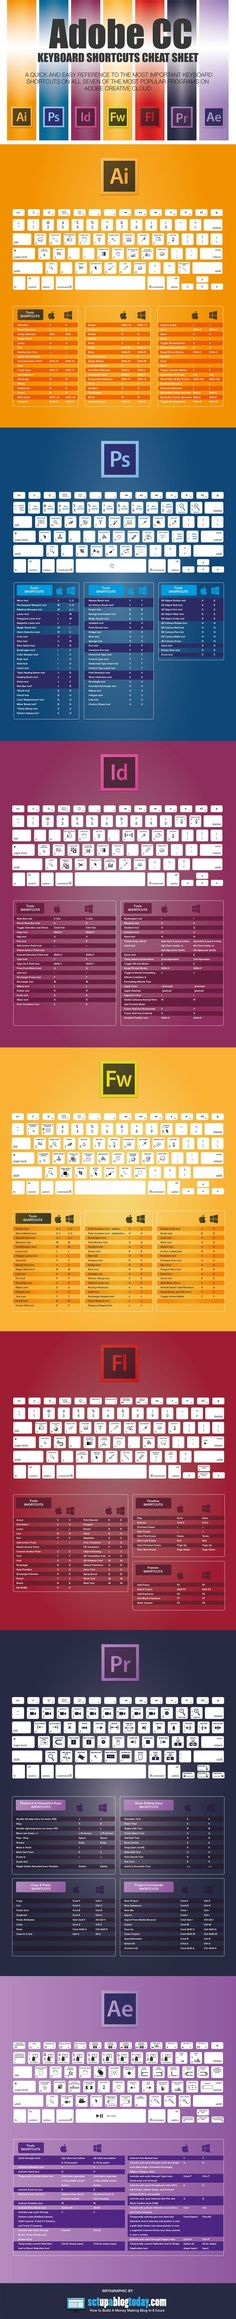 Dreaming of keyboard shortcuts for your favorite functions in the Adobe Creative Cloud? Click no more, here's a cheat sheet for the your soon to be favorite shortcuts! ...share how your fingers never have to leave the keyboard. #CRTLC #LibertySADA